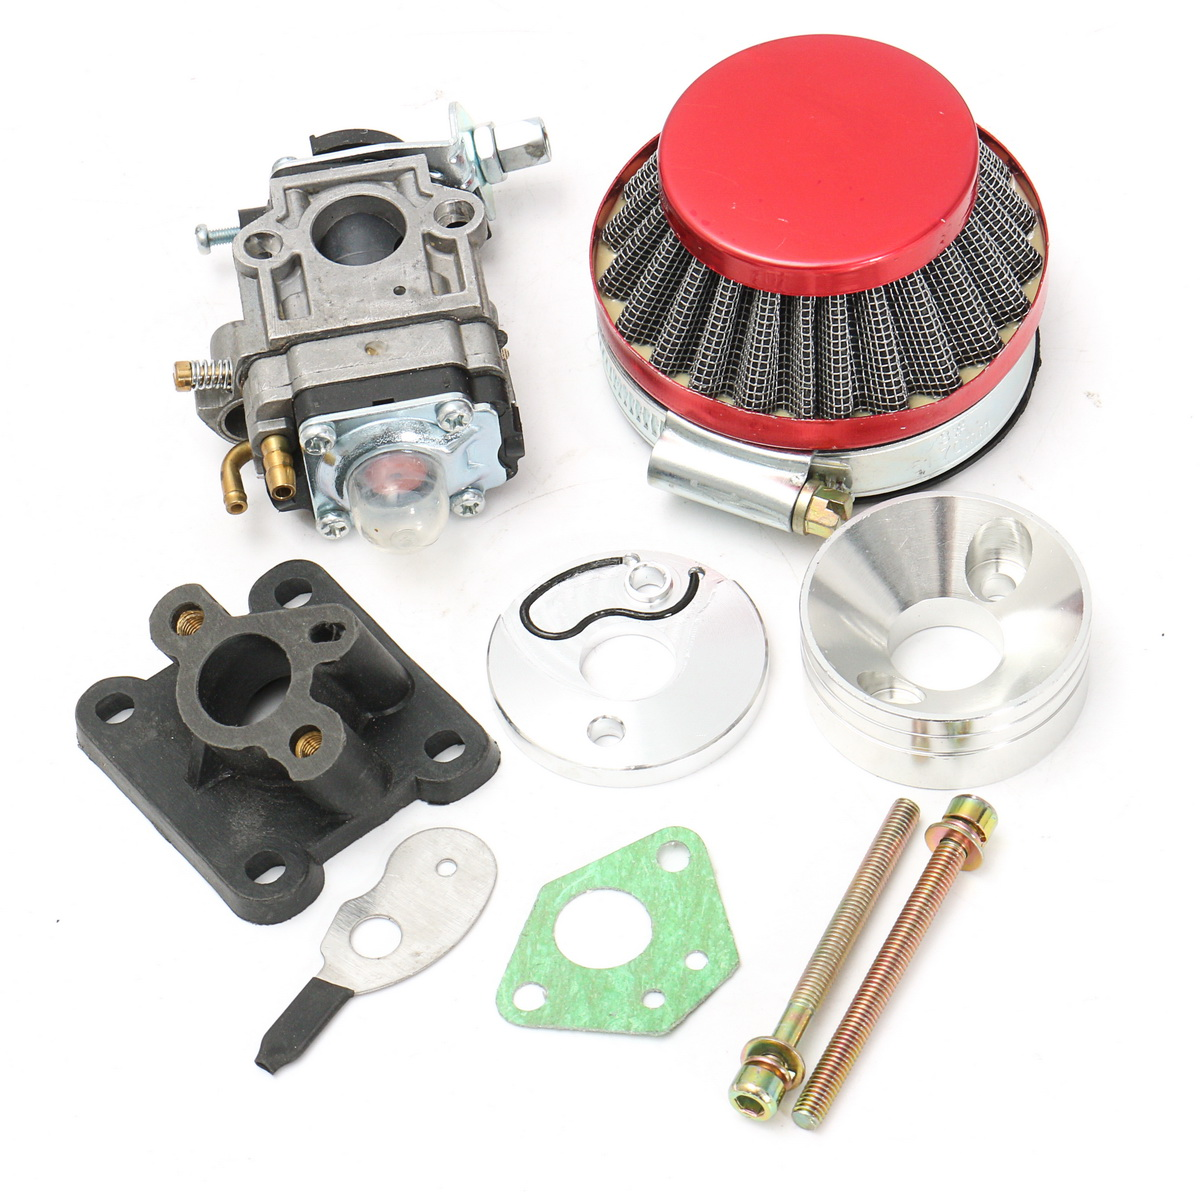 Carburetor Carb Air Filter Stack For 47 49cc Mini Moto Pit Dirt Pocket Bike ATV